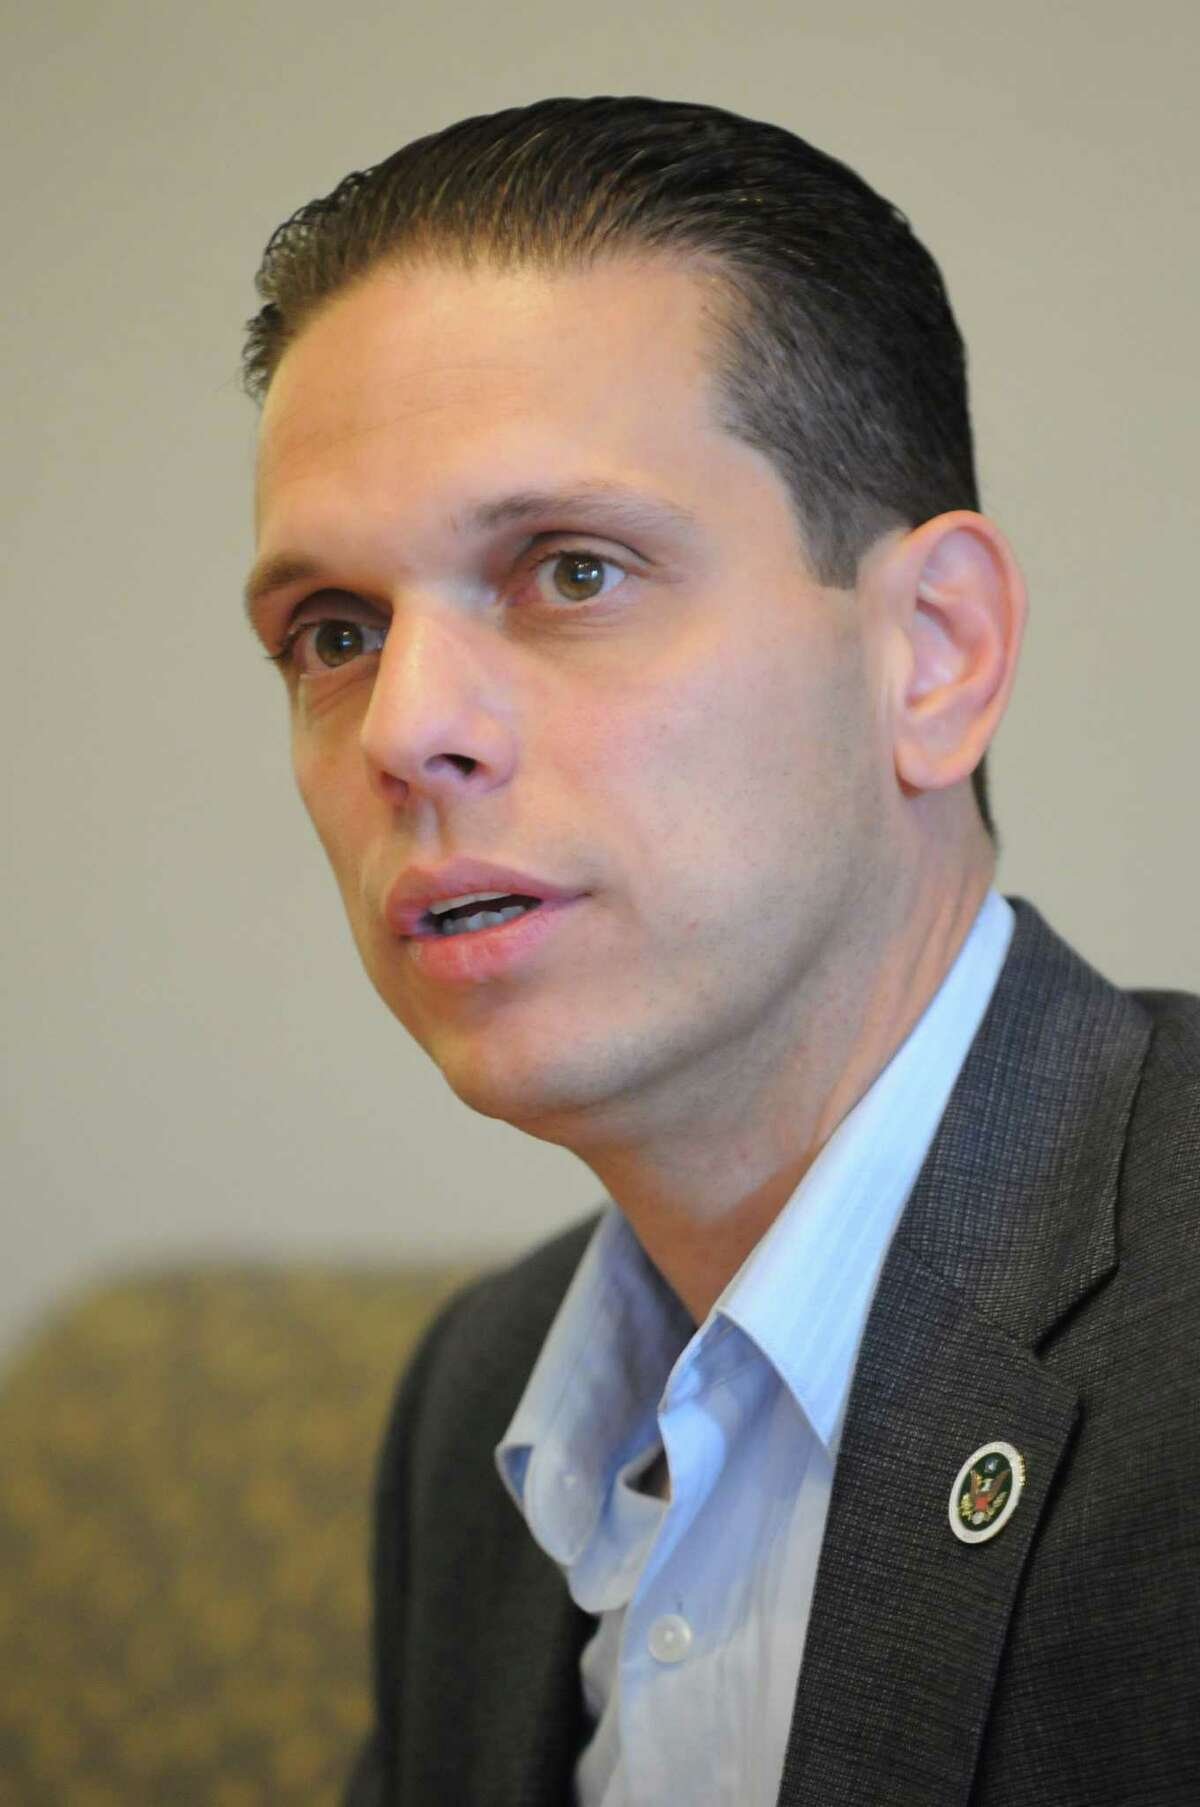 Angelo Santabarbara, candidate in the 111th Assembly District race, Monday Oct. 22, 2012, in Colonie, N.Y. (Will Waldron / Times Union)